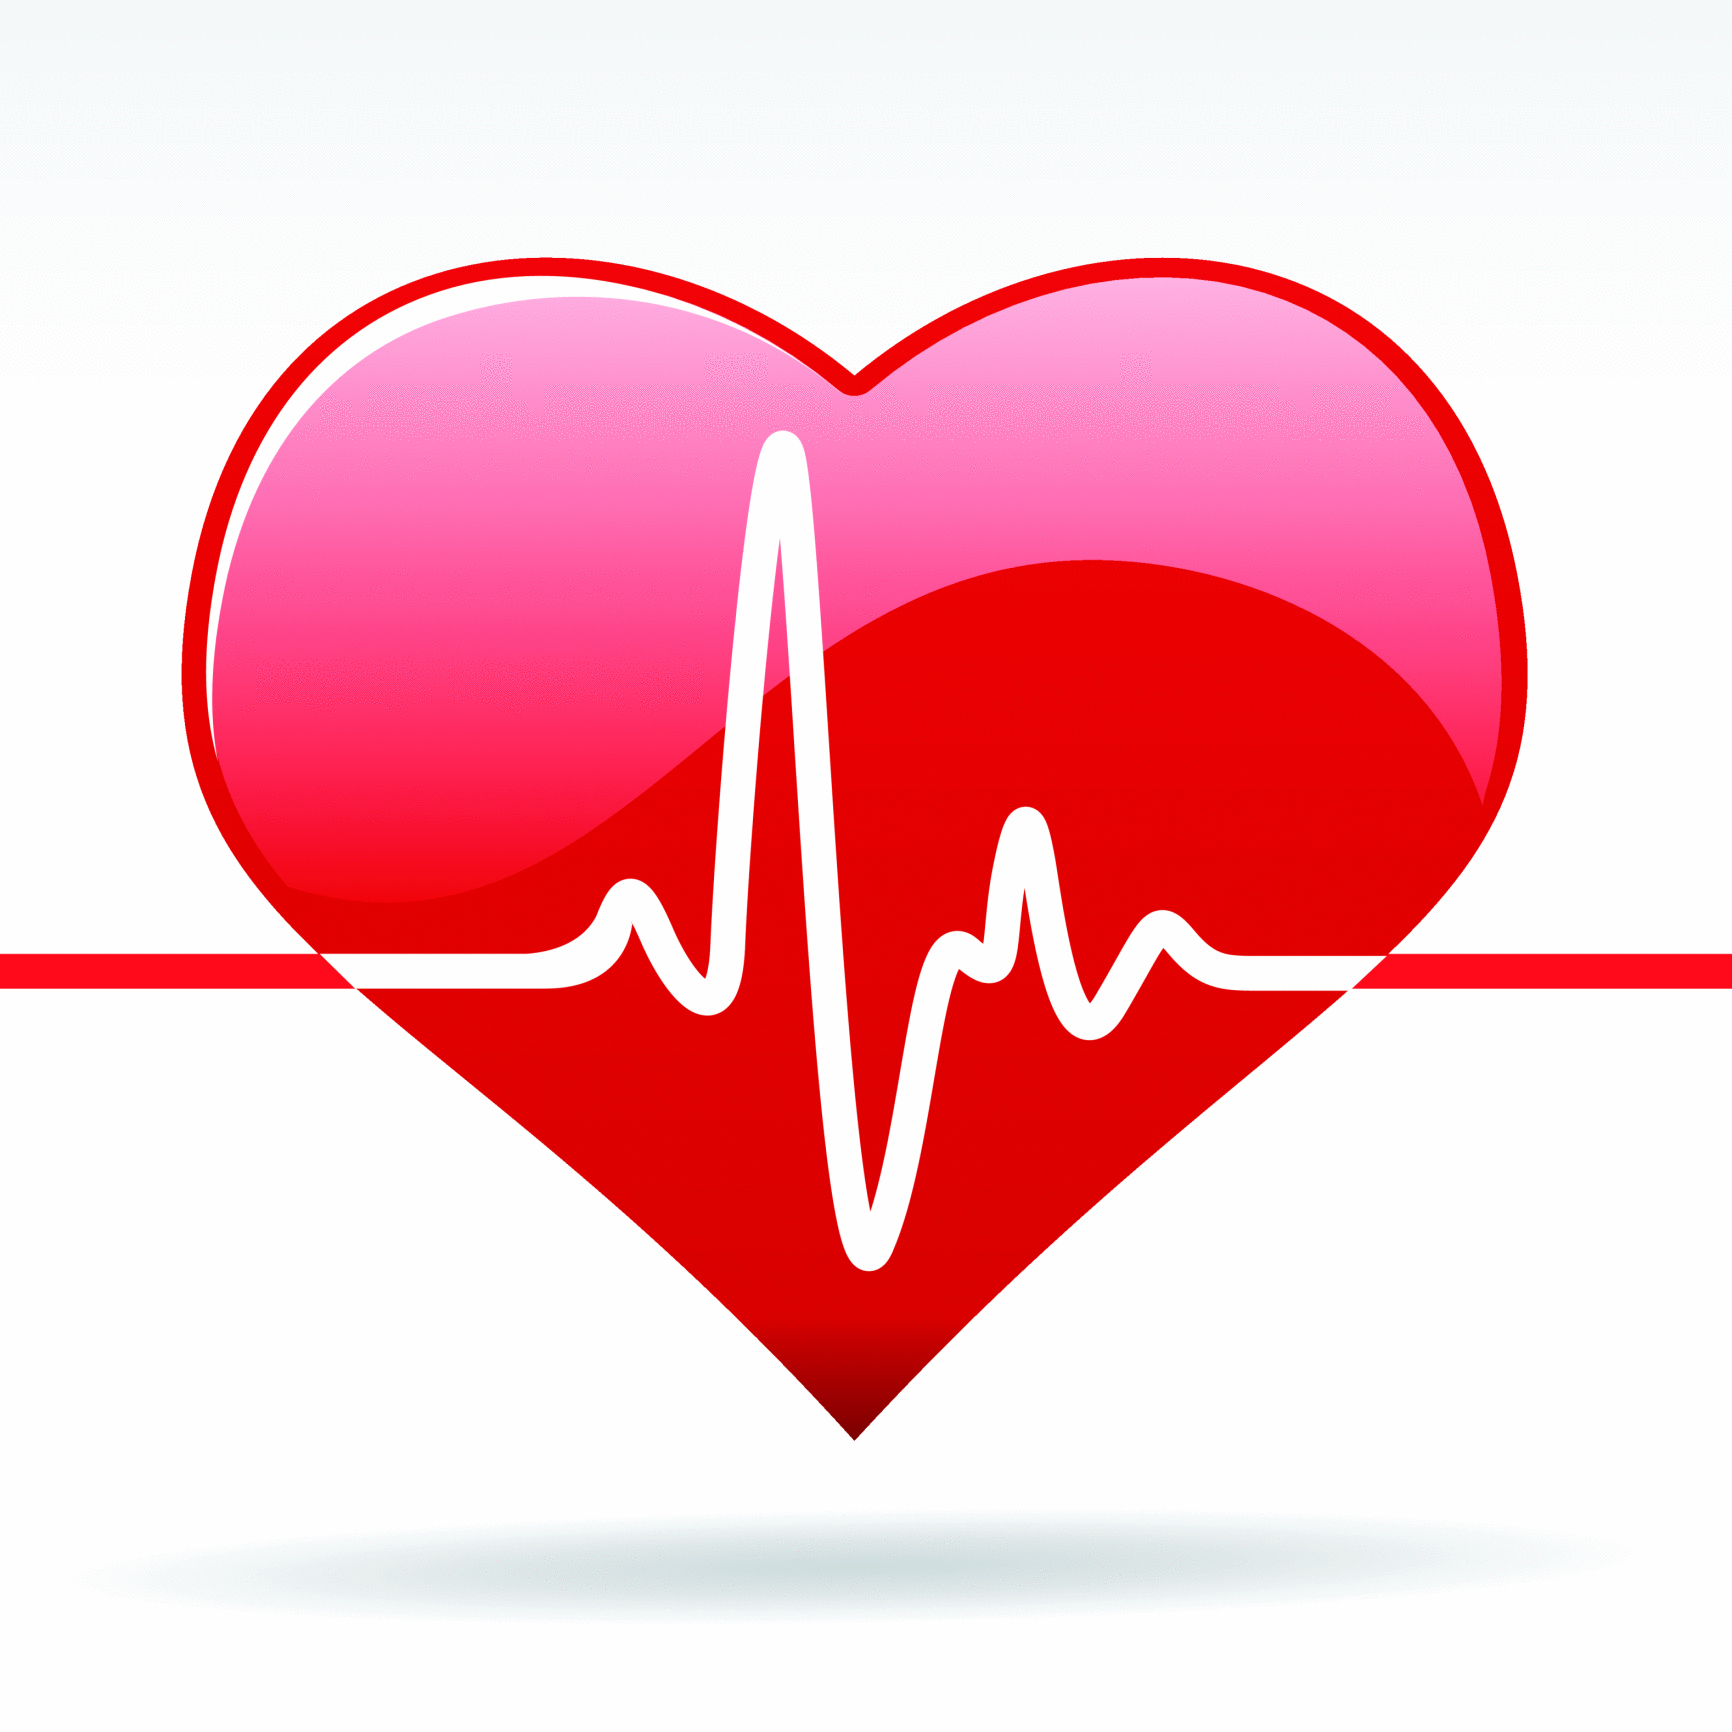 Free Heart Medical Cliparts, Download Free Clip Art, Free.